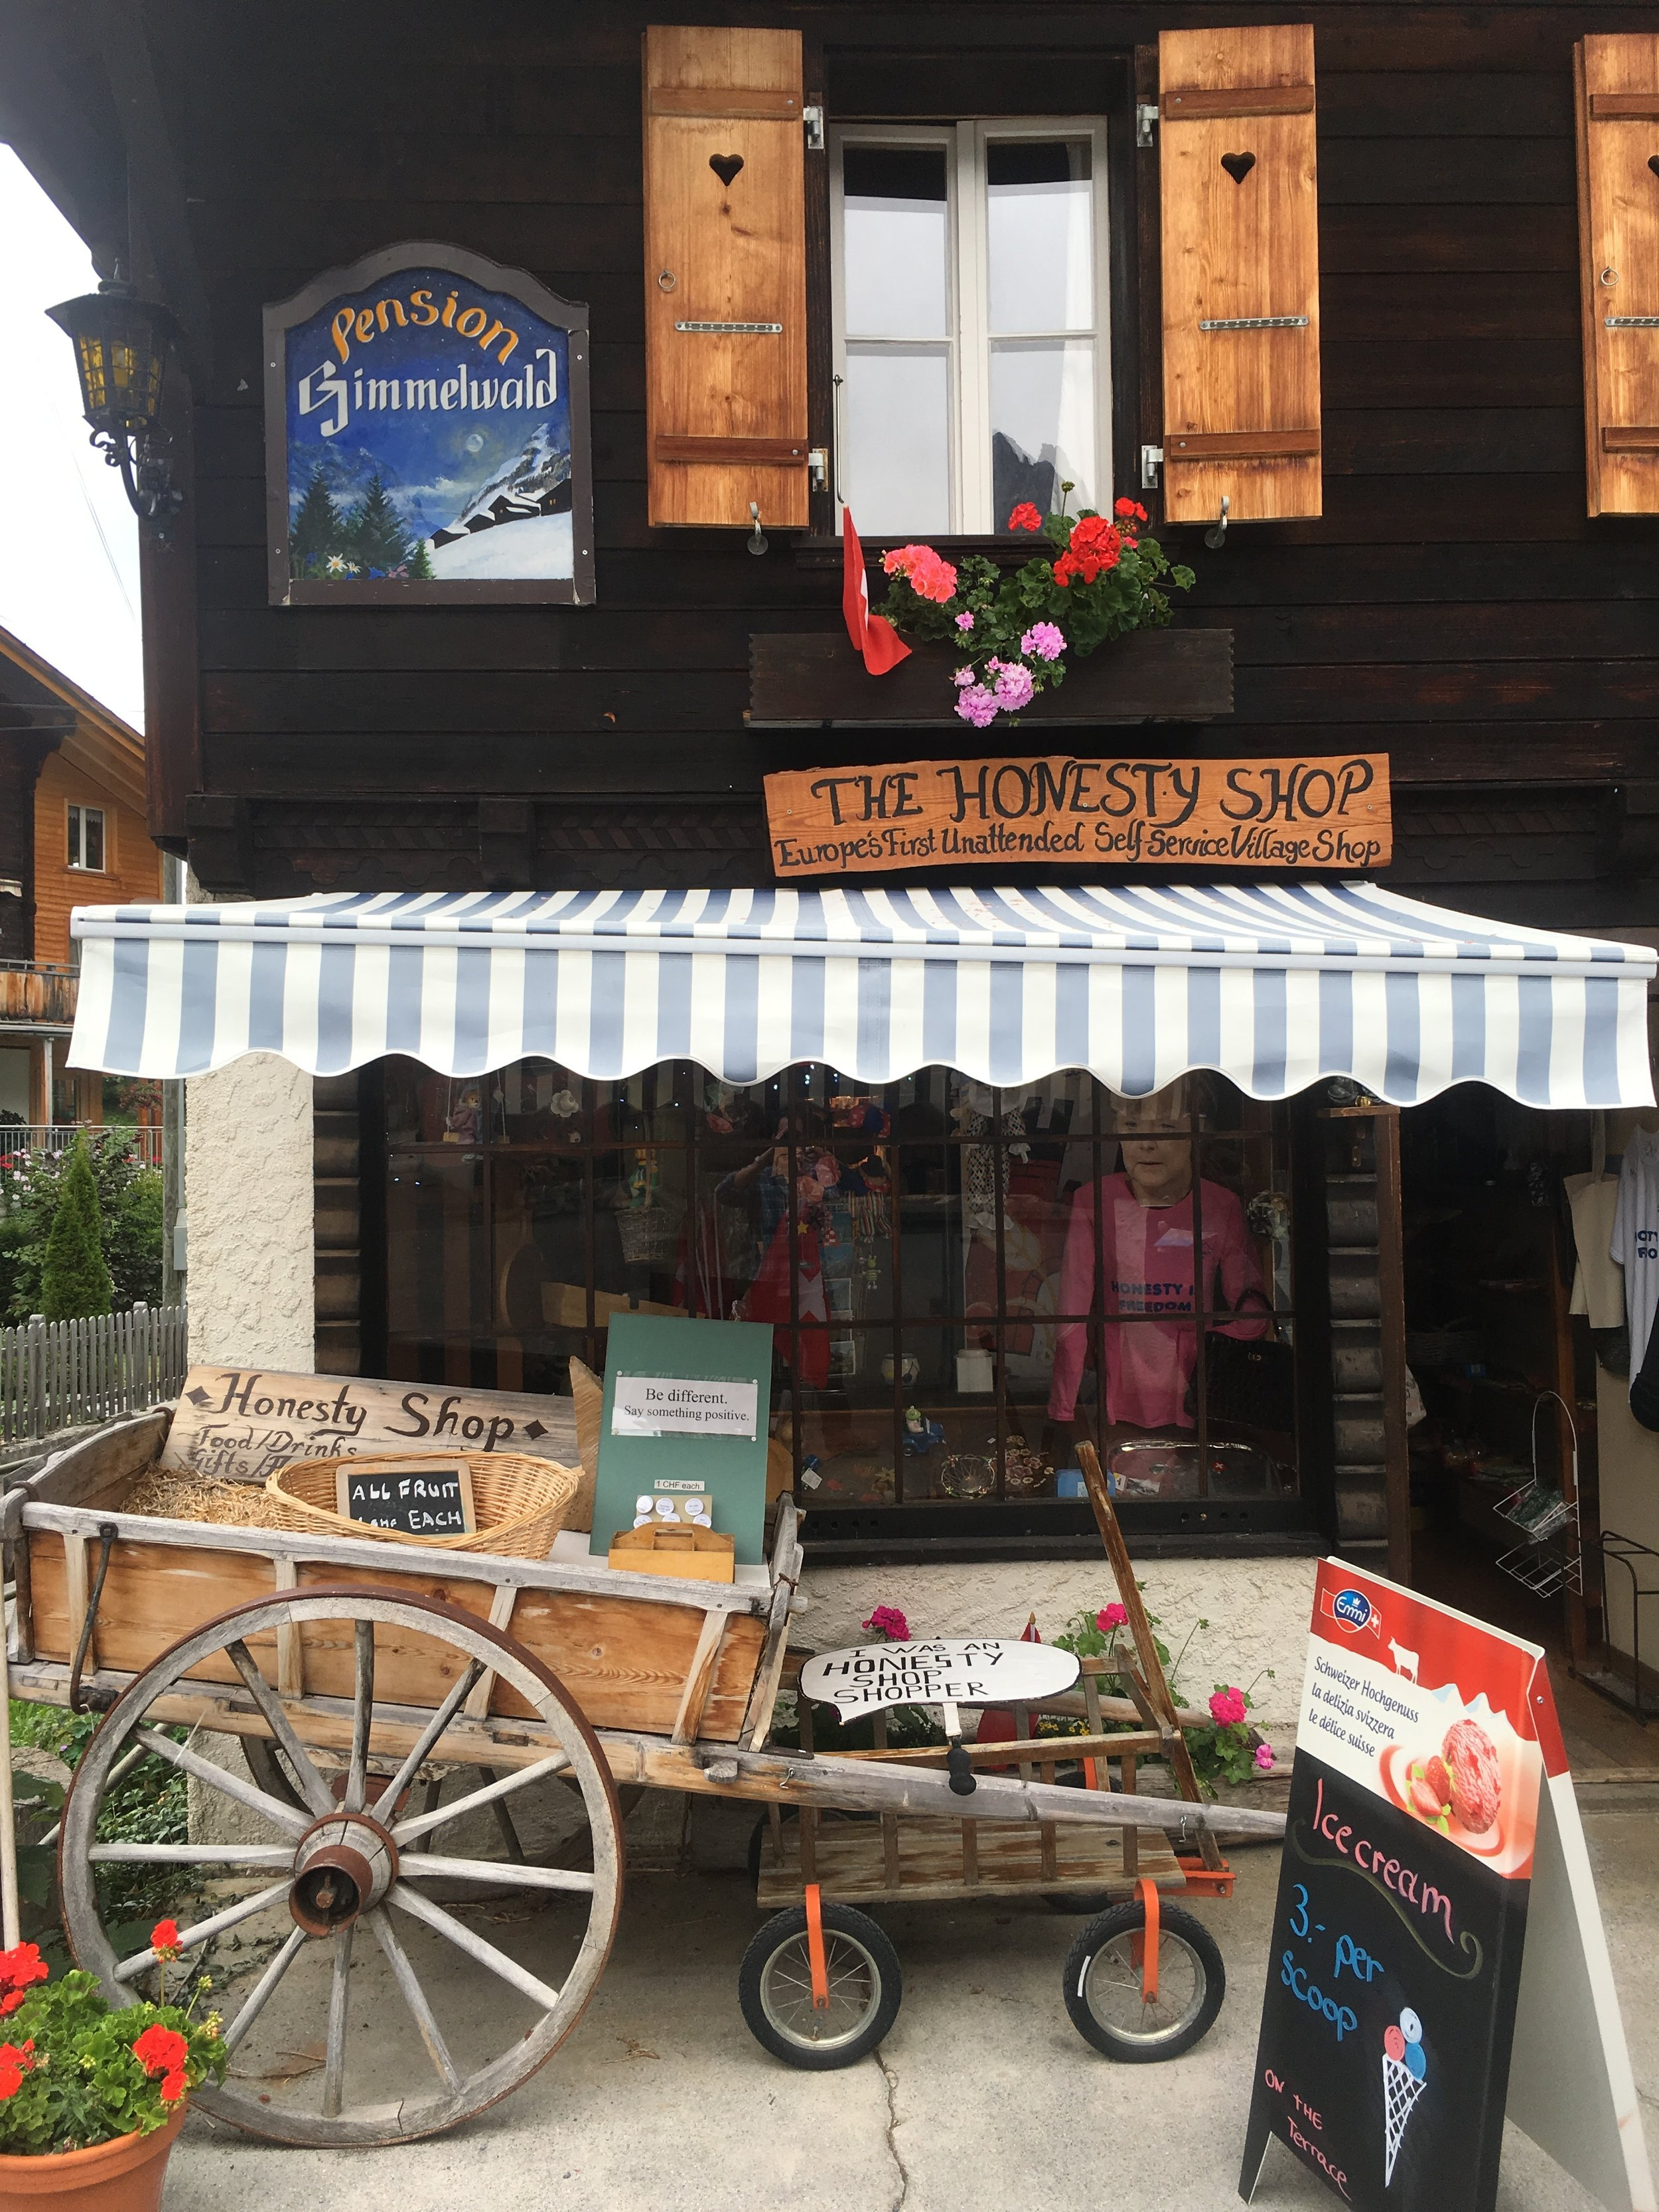 The Honesty Shop in Gimmelwald, Switzerland.